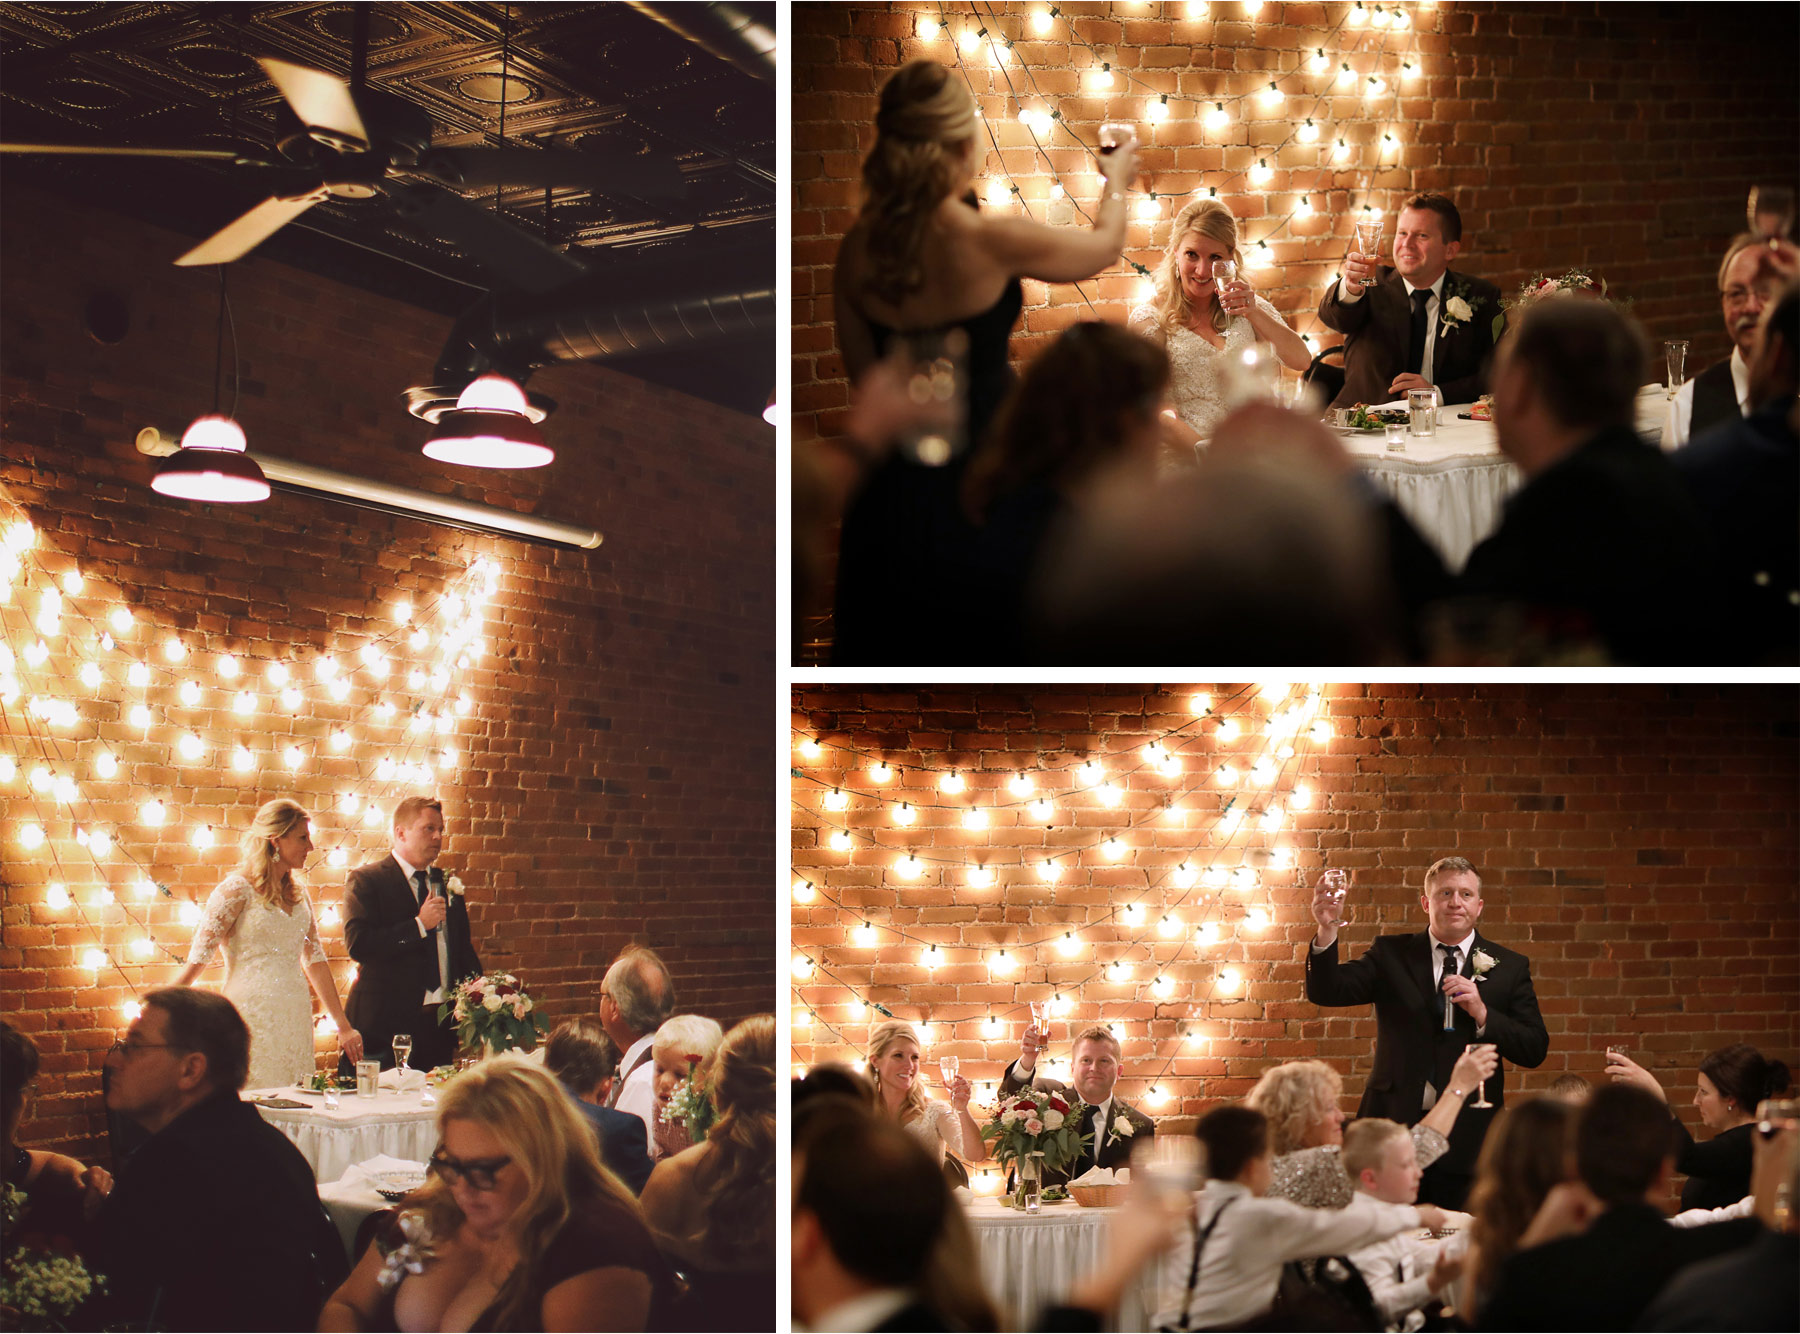 21-Shakopee-Minnesota-Wedding-Photography-by-Vick-Photography-Turtles-1890-Social-Centre-Reception-Toasts-Amber-and-Justin.jpg